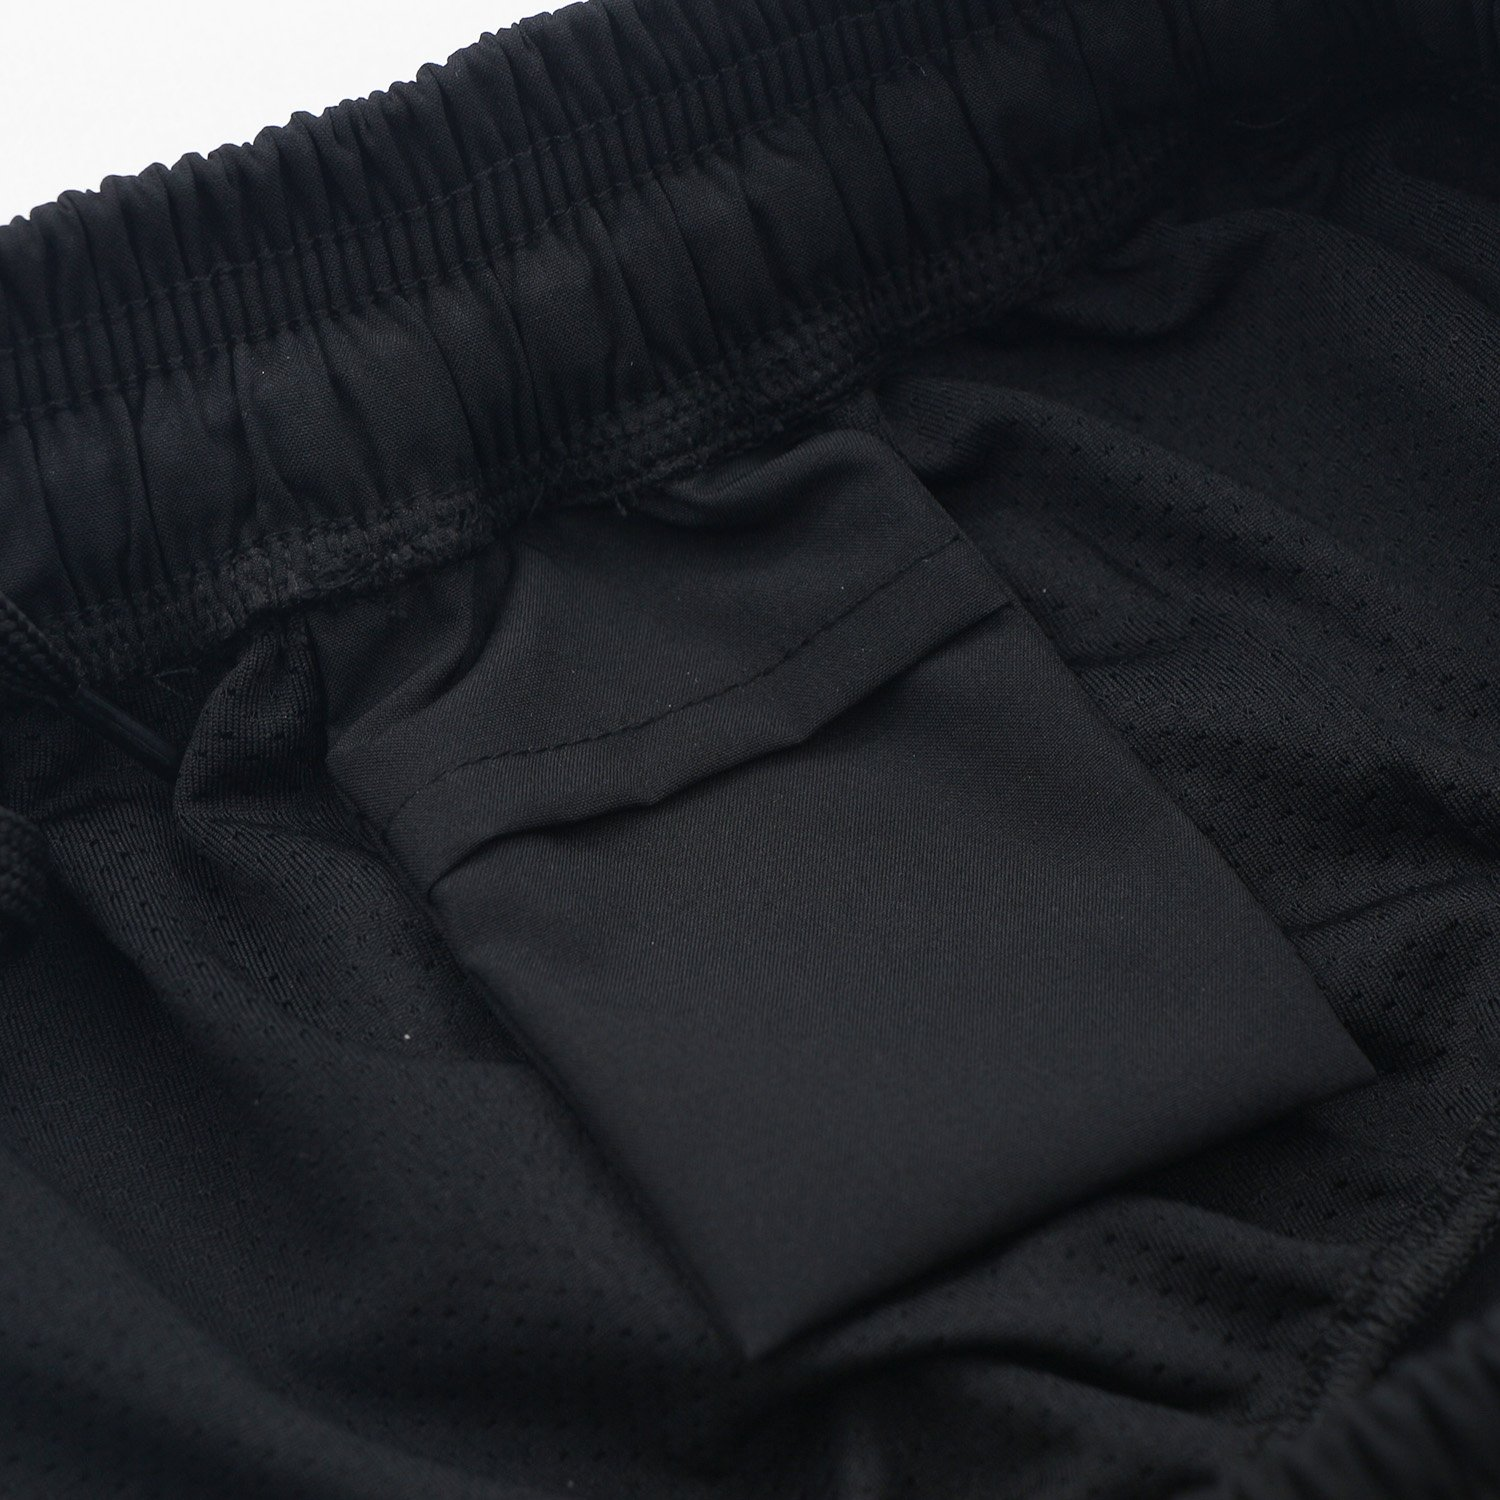 LightInTheBox Mens Running Shorts with Pocket Quick Dry Anatomic Design Exercise /& Fitness LightInTheBox Home S565640600008##